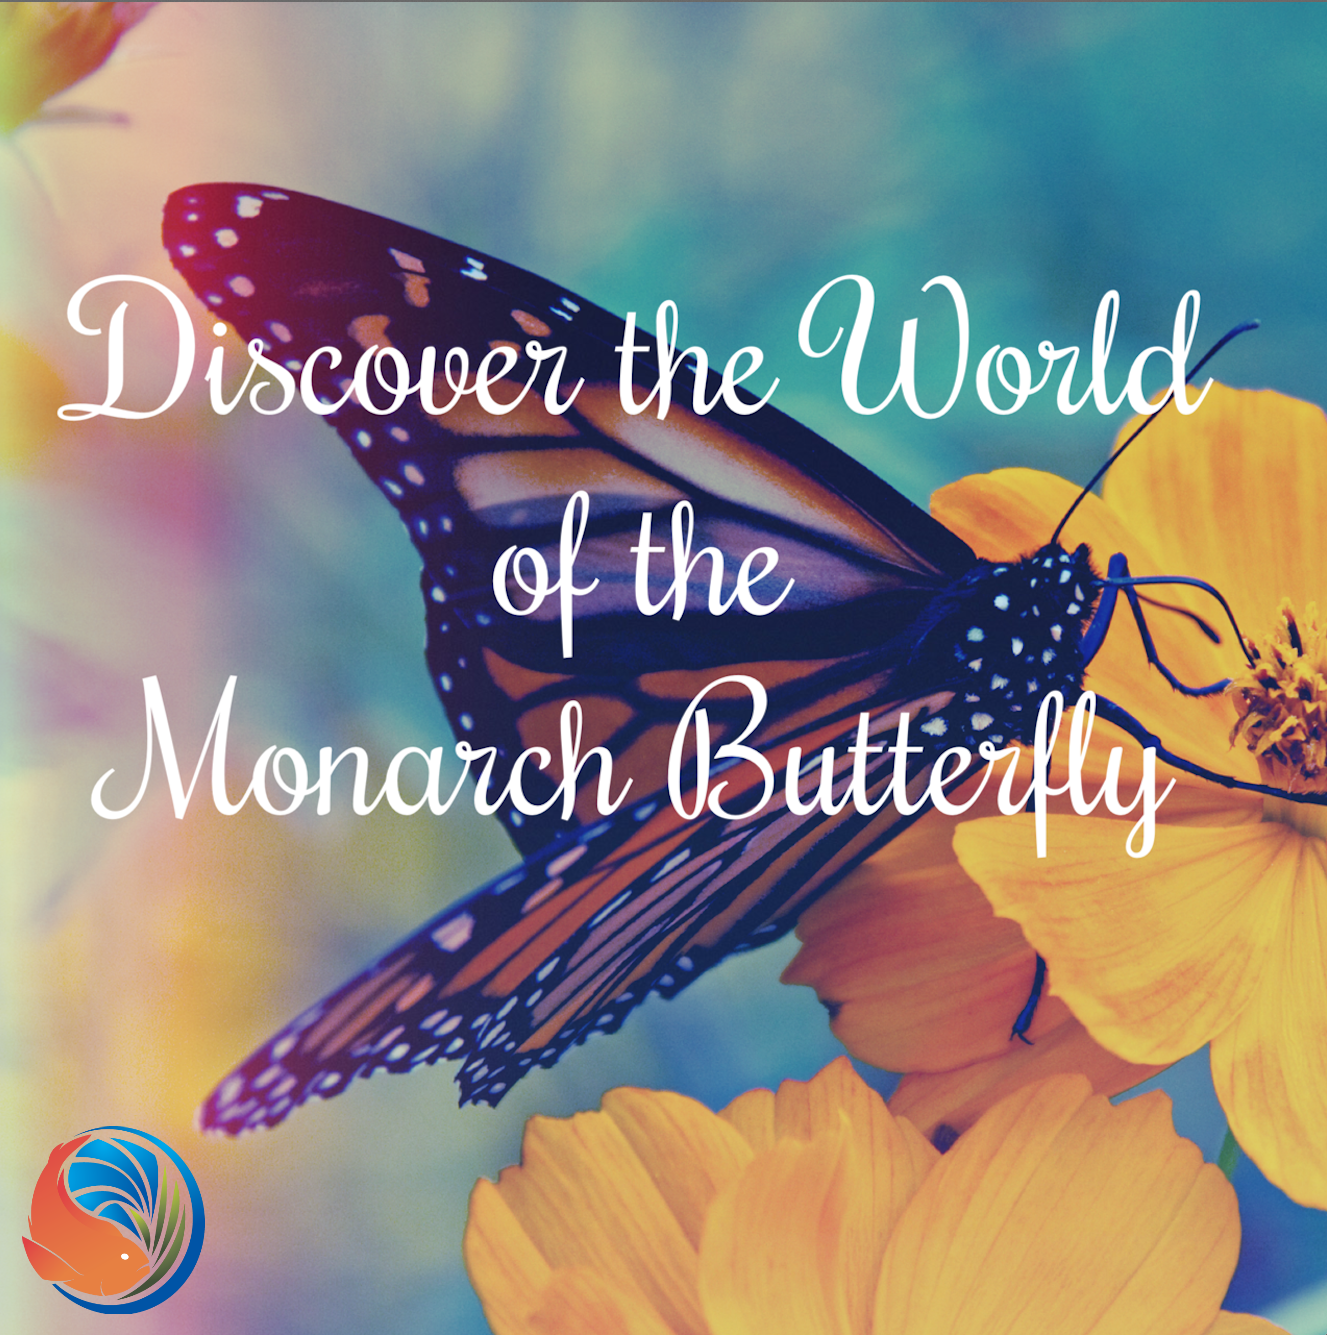 See the beautiful monarch butterfly